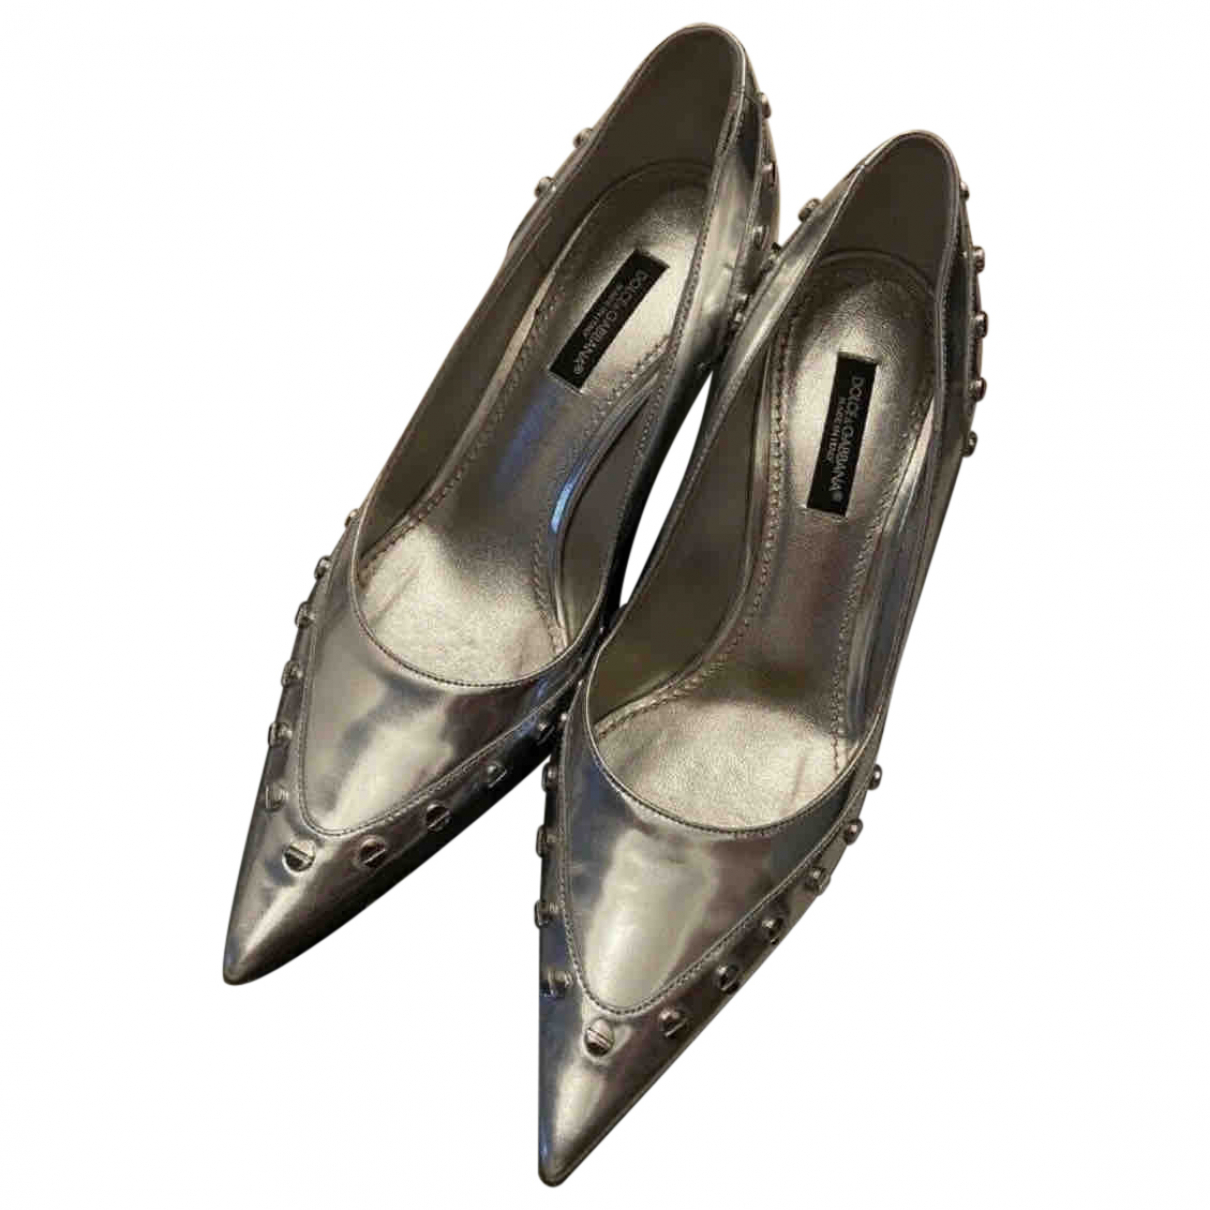 Dolce & Gabbana \N Silver Patent leather Heels for Women 36 EU